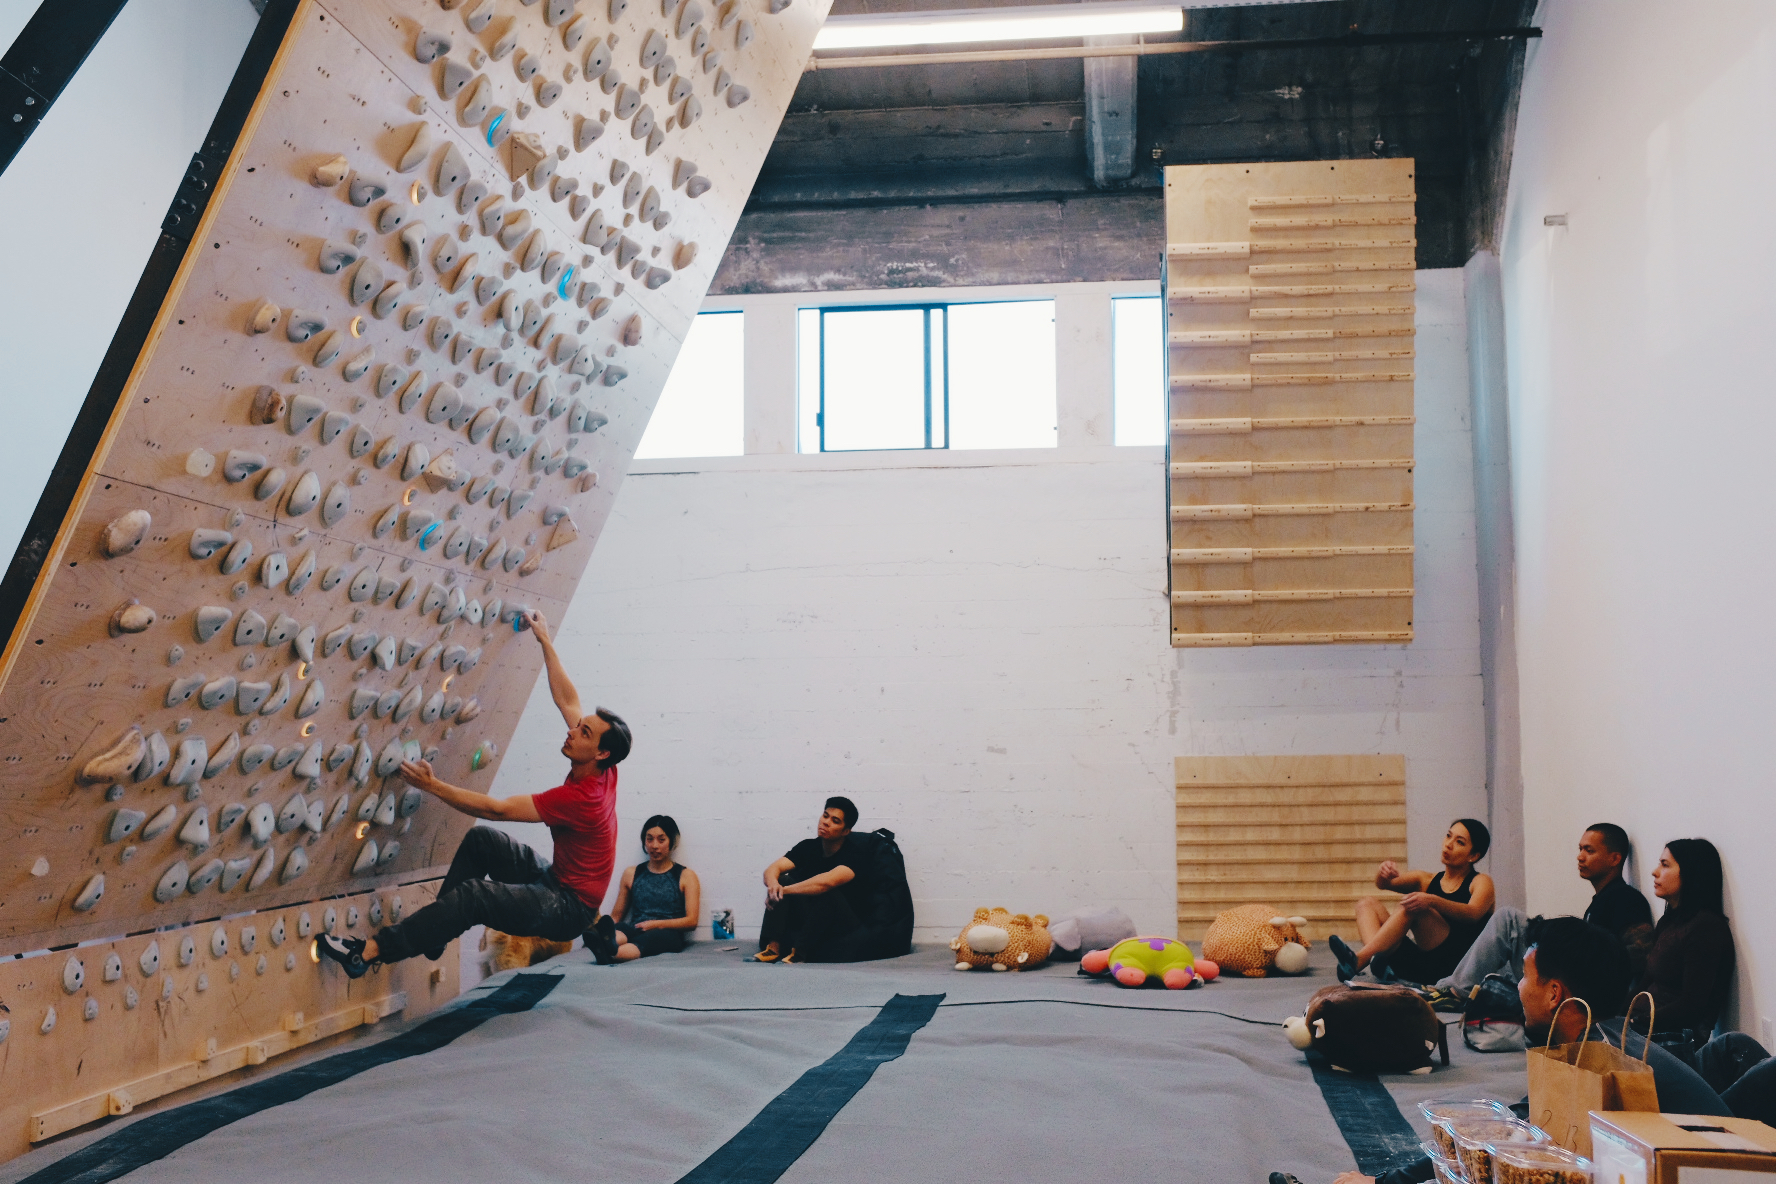 Thanks to everyone who came and climbed!